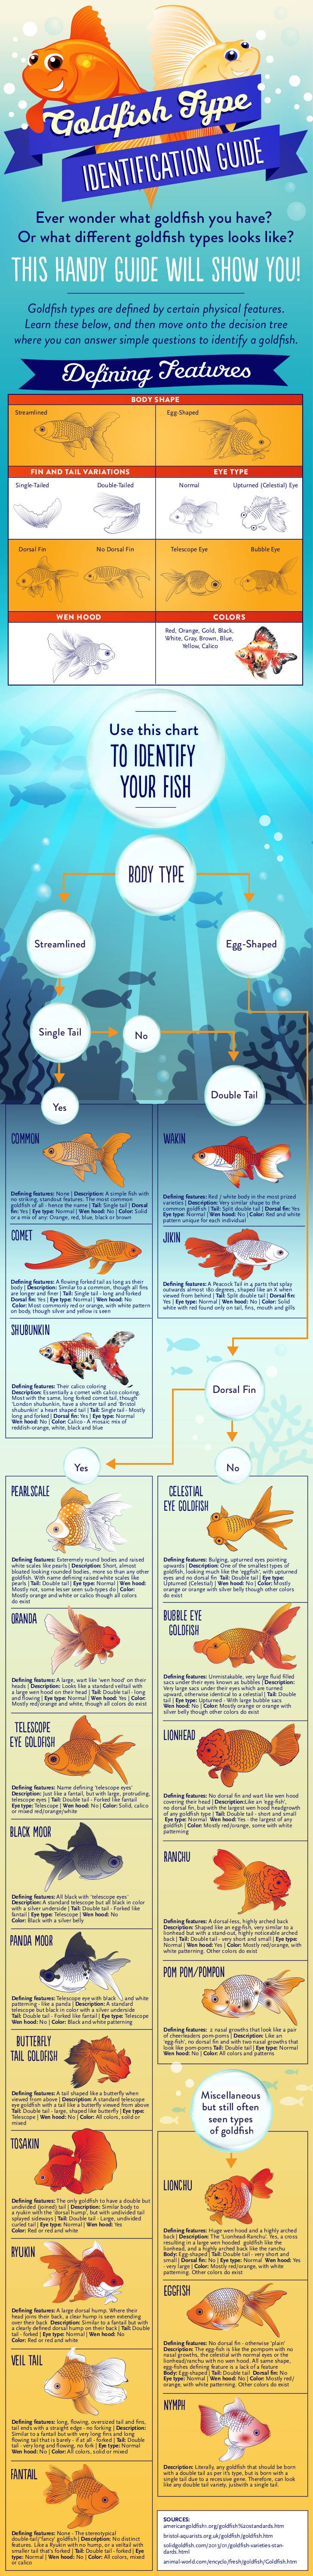 Type of Goldfish infographic charting all common goldfish types and how to identify them